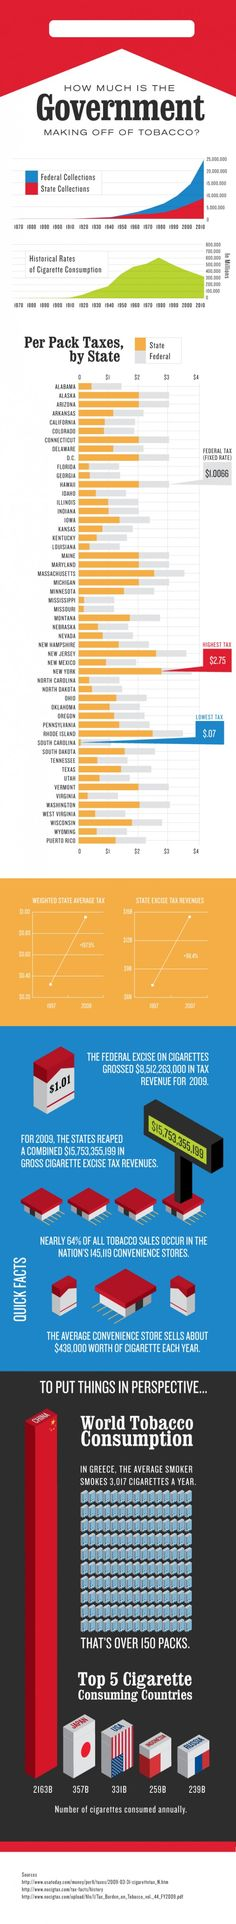 How Much is the Government Making Off of Tobacco? http://www.stateoftobaccocontrol.org